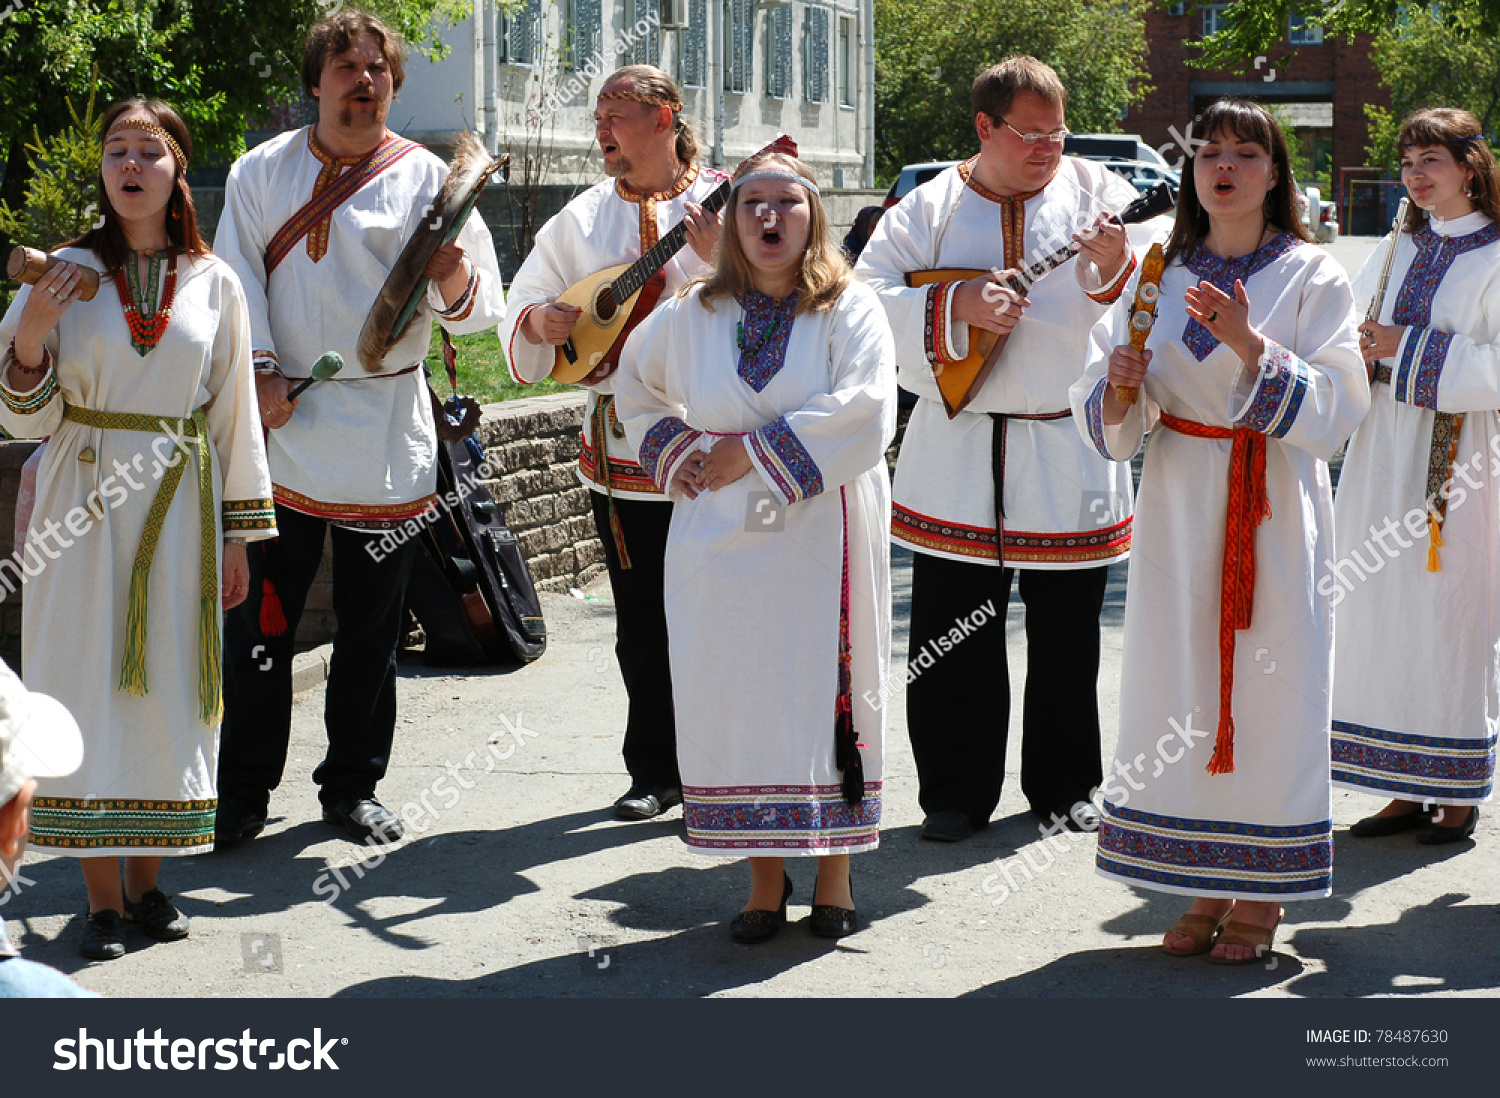 kurgan russia traditional russian stock photo  kurgan russia 21 traditional russian singers pose during festival of russian culture